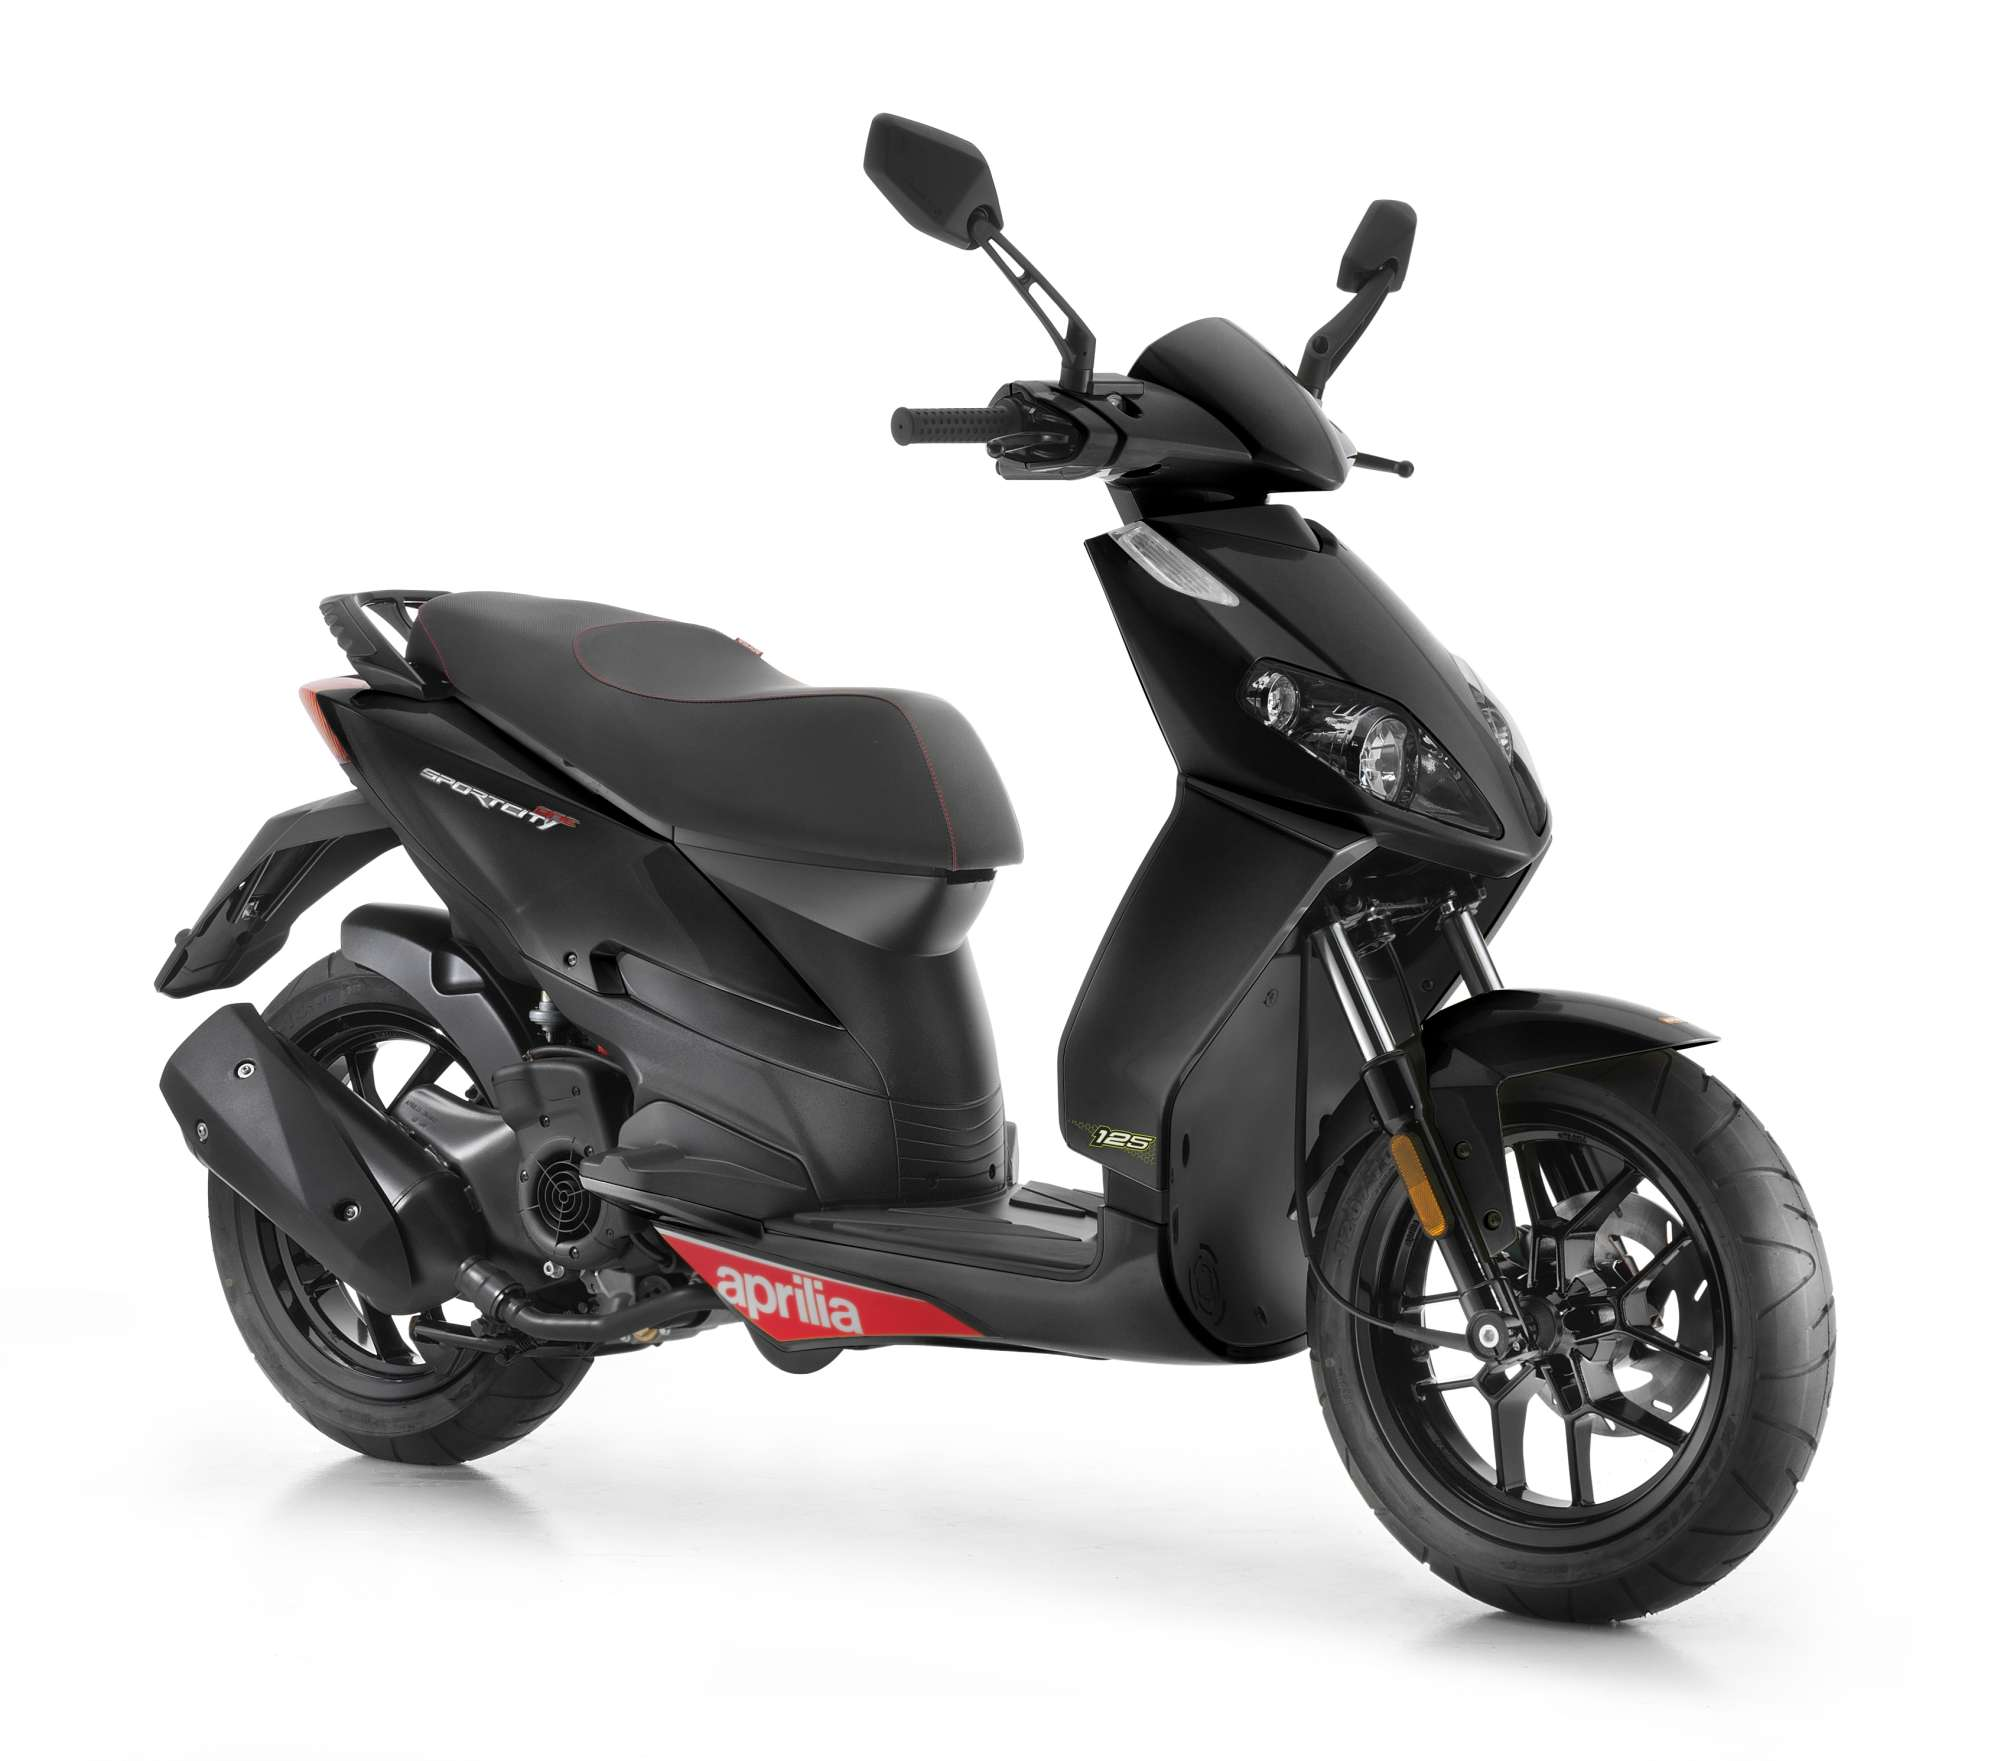 gebrauchte aprilia sportcity 50 one 2t motorr der kaufen. Black Bedroom Furniture Sets. Home Design Ideas